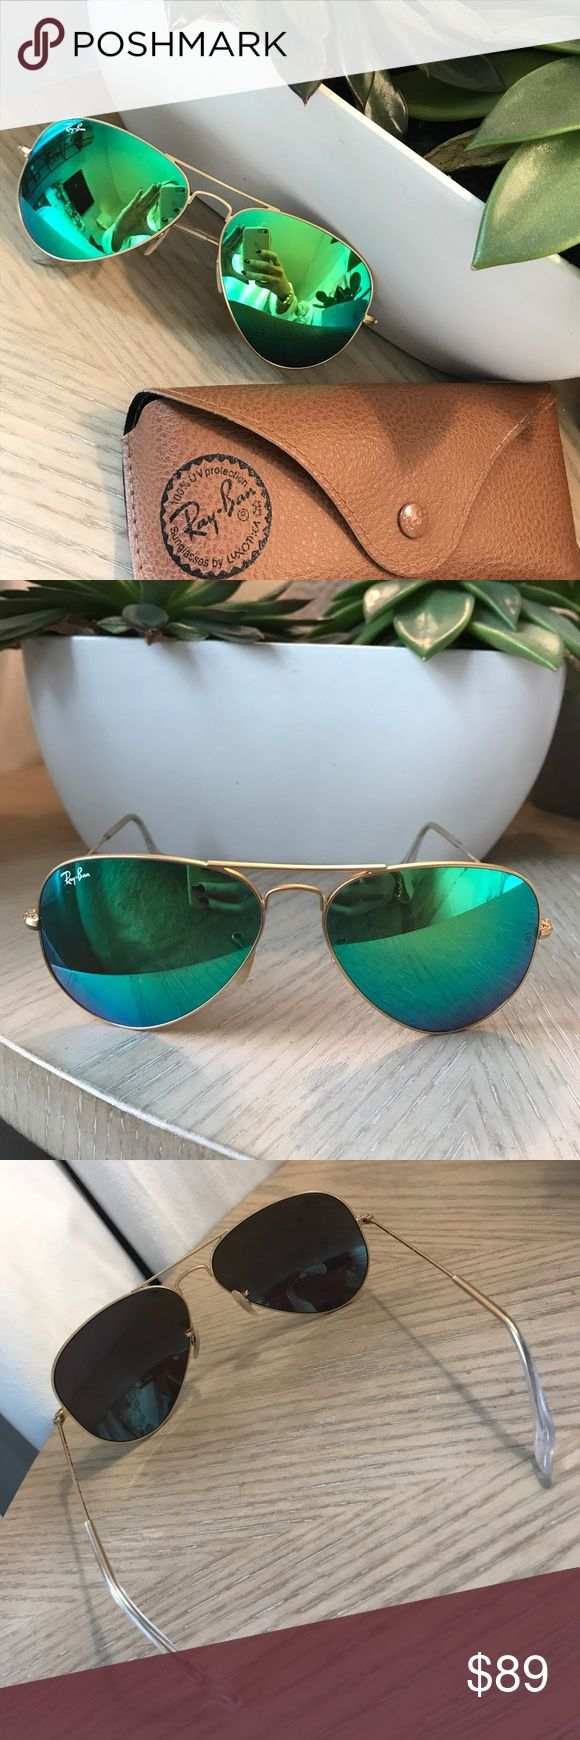 Ray-ban Green Mirrored Aviators Ray-ban Green Mirrored Aviators - AVIATOR FLASH LENSES Model code: RB3025 112/19 58-14 Frame material: Metal Frame color: Gold Lenses: Green Flash  Shape: Pilot Size lens-bridge: 58 14 Temple Length: 135 Ray-Ban Accessories Sunglasses